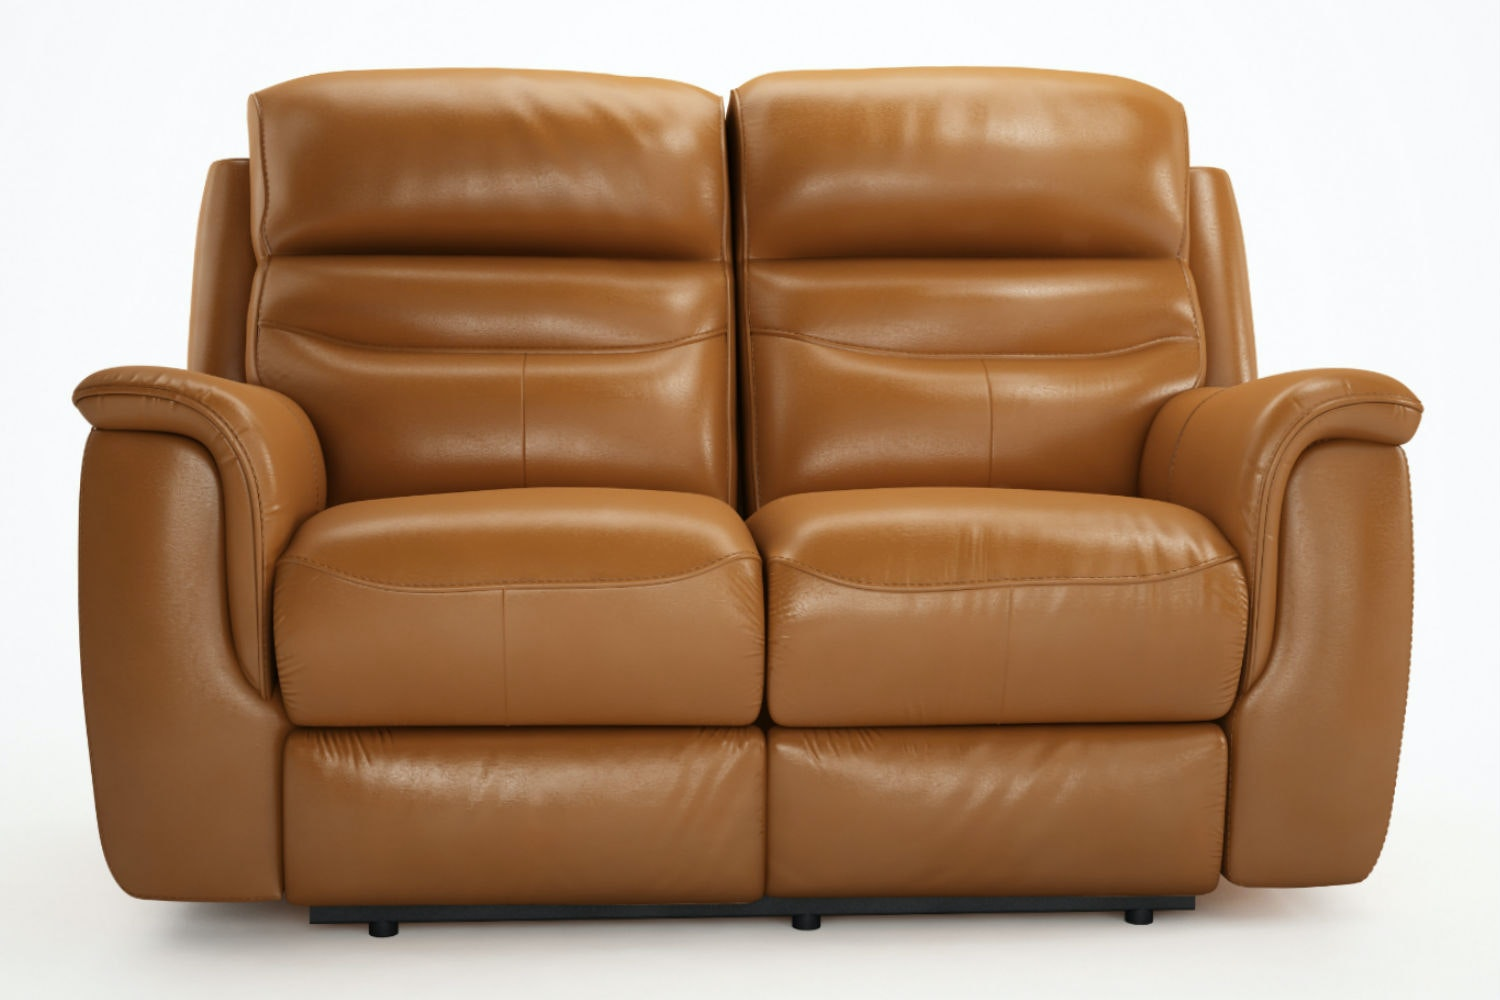 Bayle 2 Seater Leather Recliner Sofa